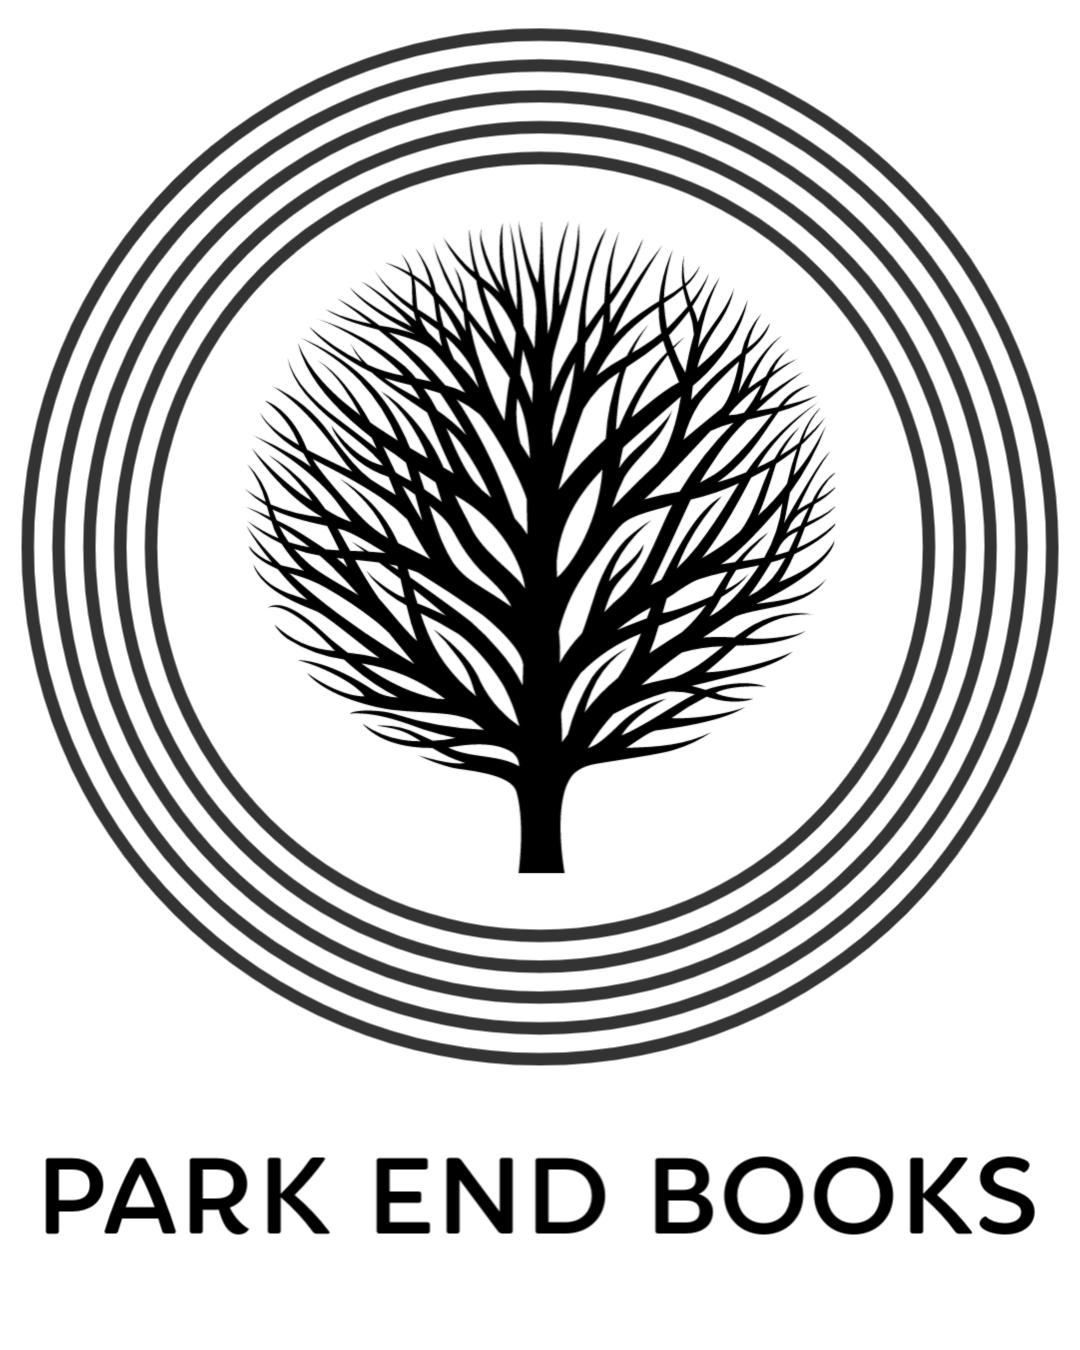 rounded leafless tree in the center of four concentric circles above text PARK END BOOKS